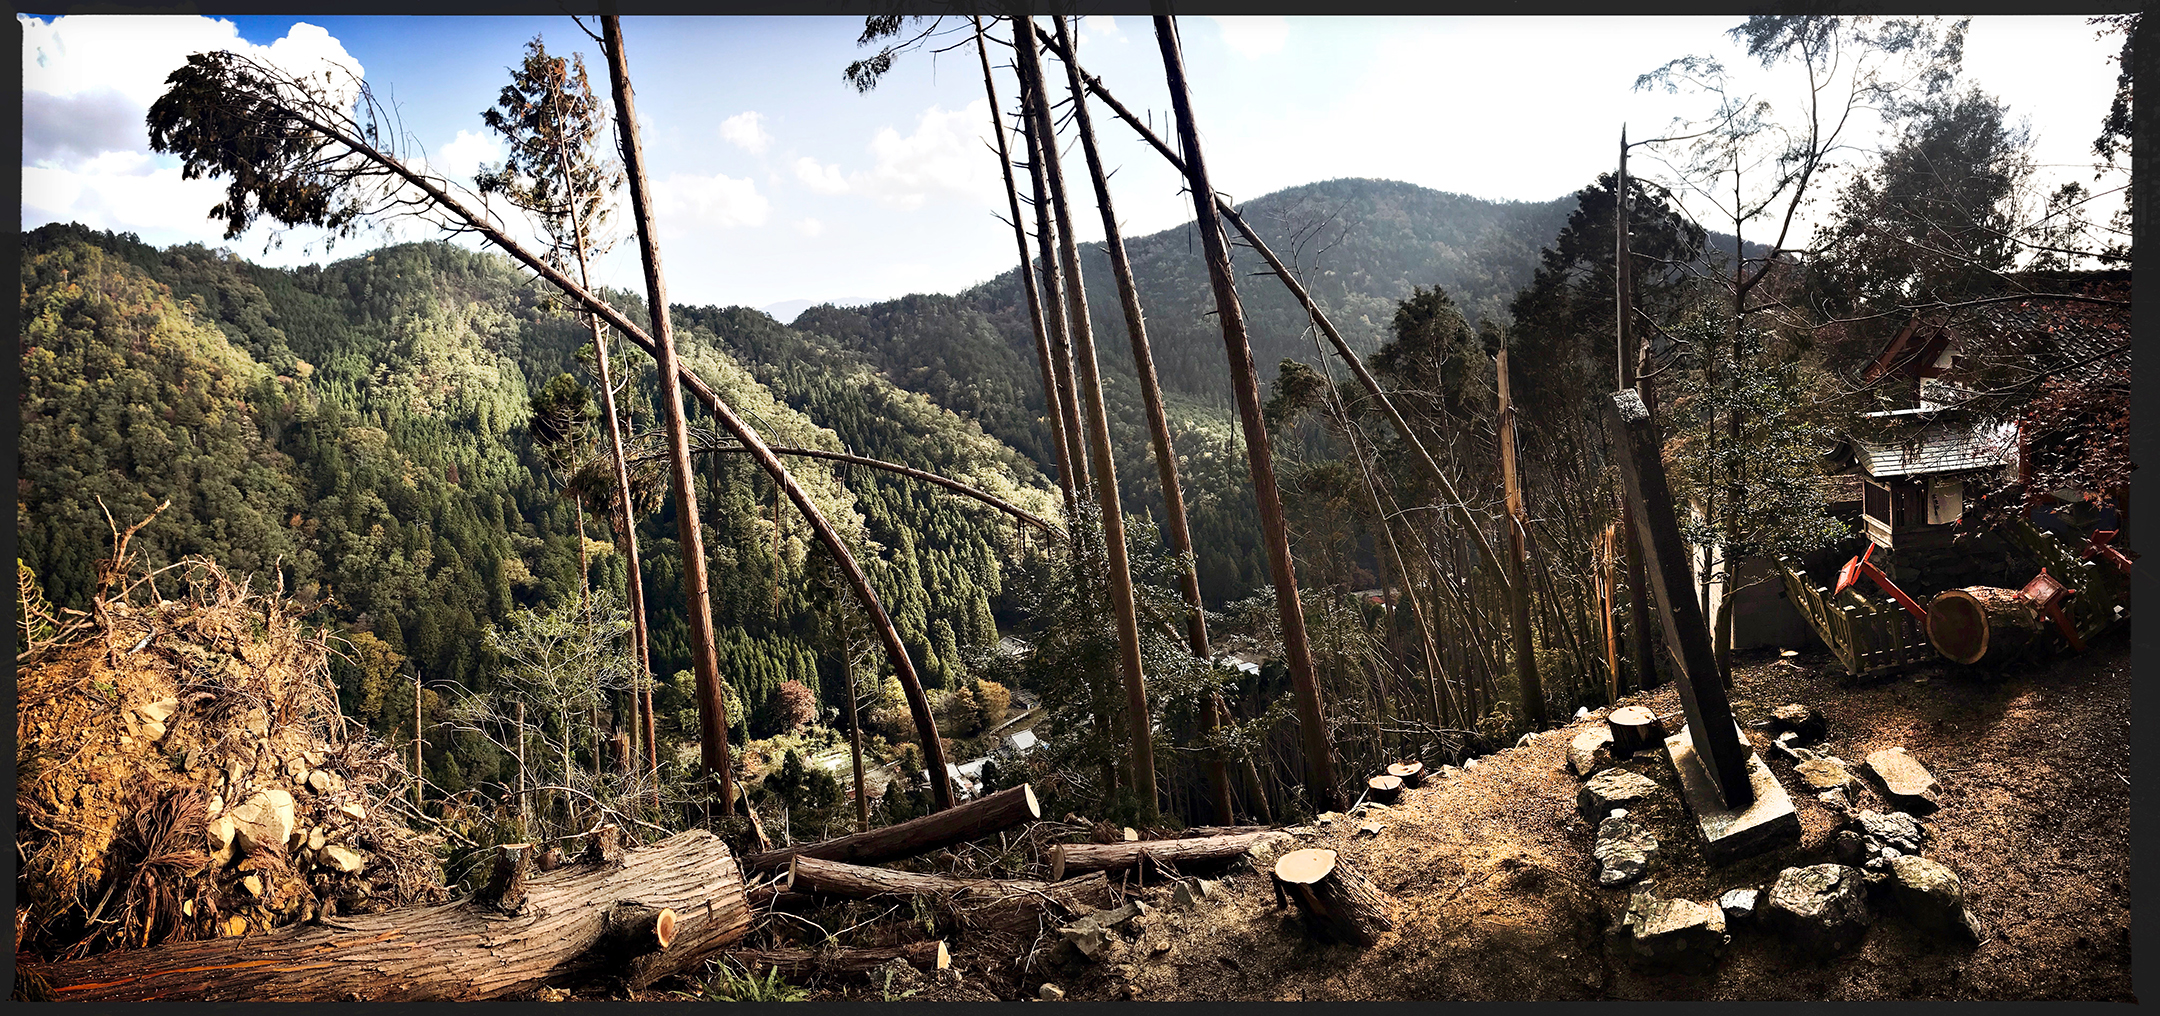 The battered landscape of Kurama-dera. The water from typhoon rushed down the mountainside with violent force creating an avalanche of felled trees and destroyed ancient shrines that is such an important part of the cultural heritage of Kyoto.